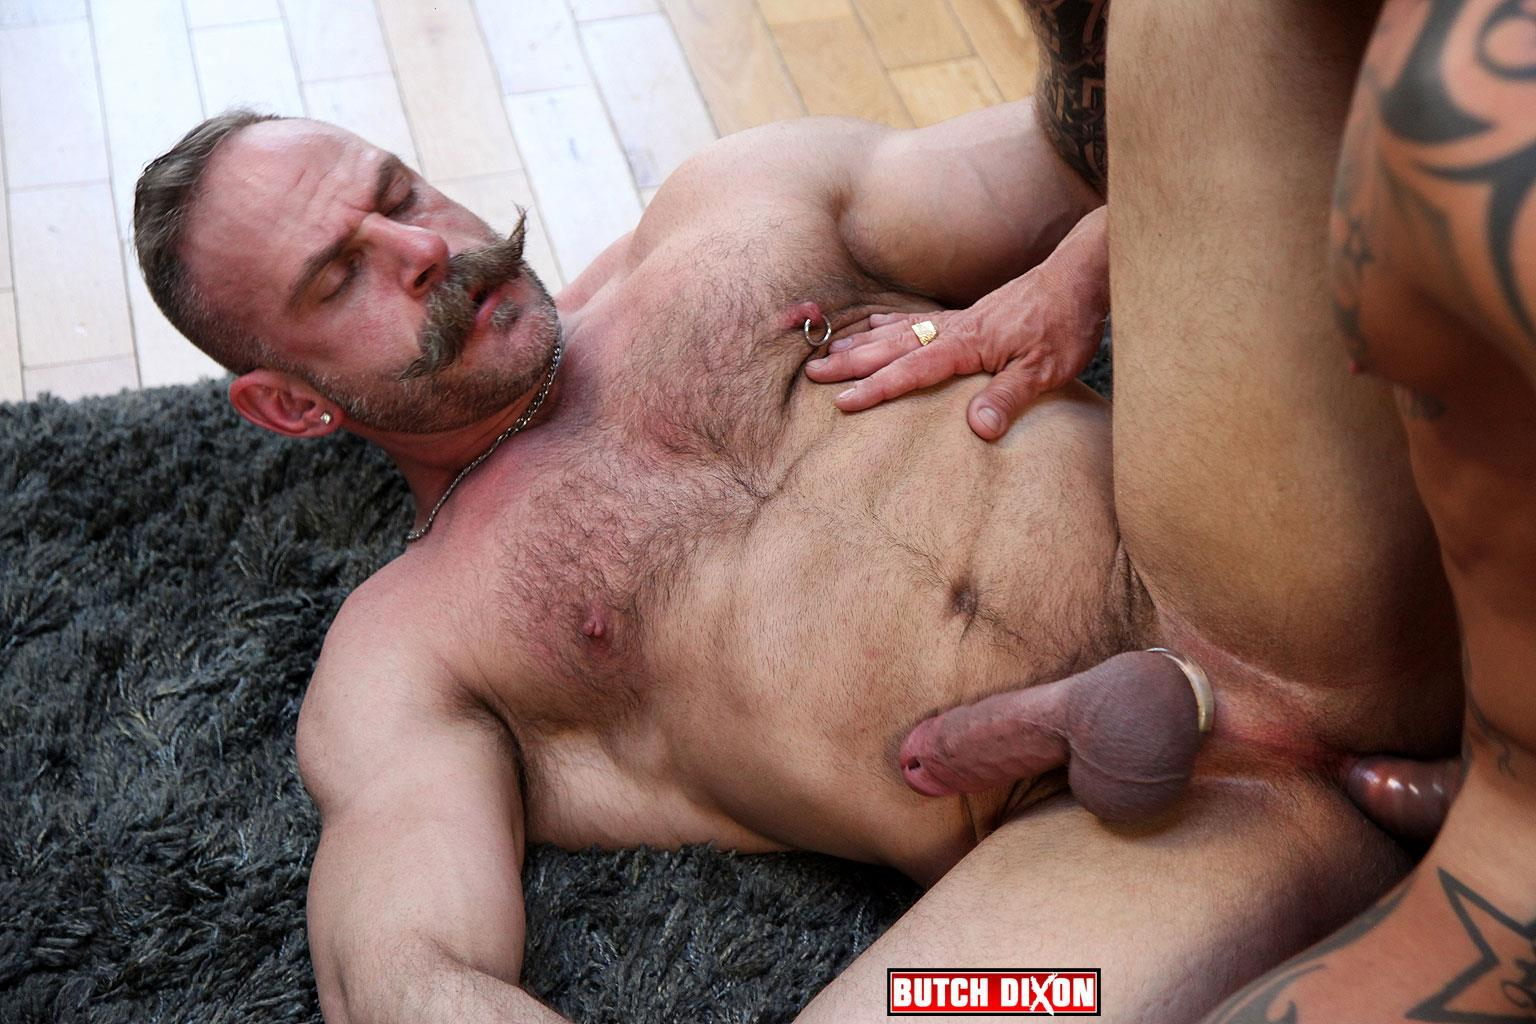 Butch Dixon Samuel Colt and Frank Valencia Hairy Muscle Daddy Getting Fucked By Latino Cock Amateur Gay Porn 13